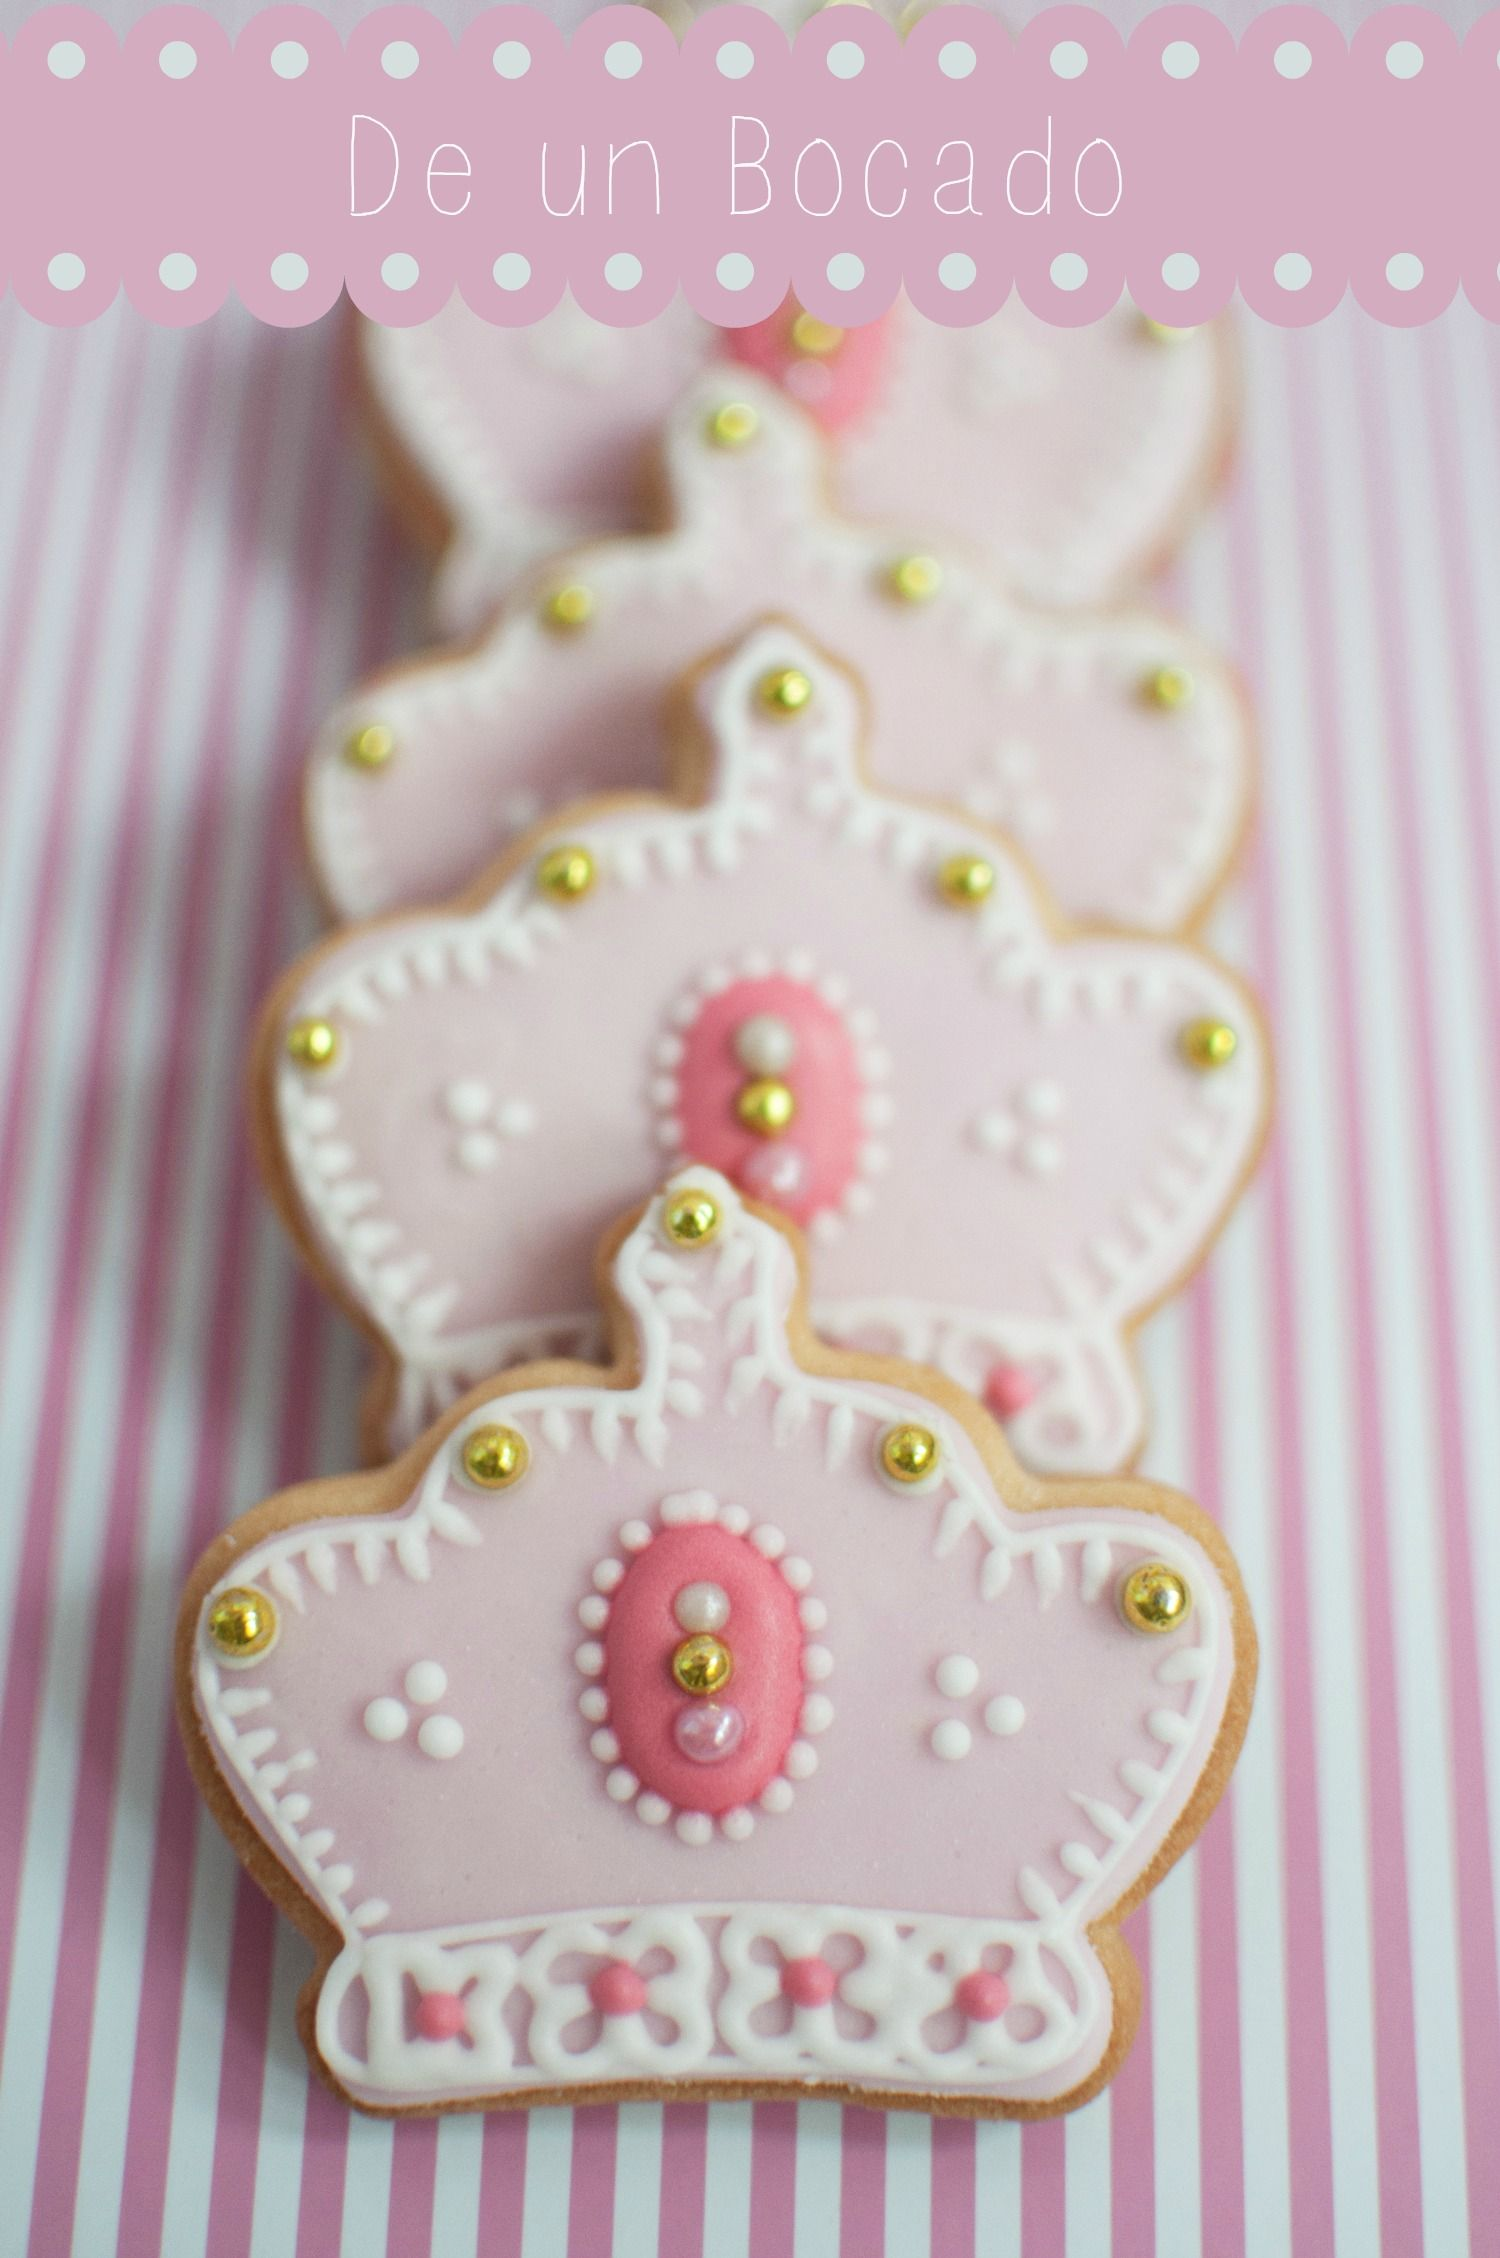 Galletas Decoradas De Princesas Princess Cookies Galletas De Princesa Galletas Cookies